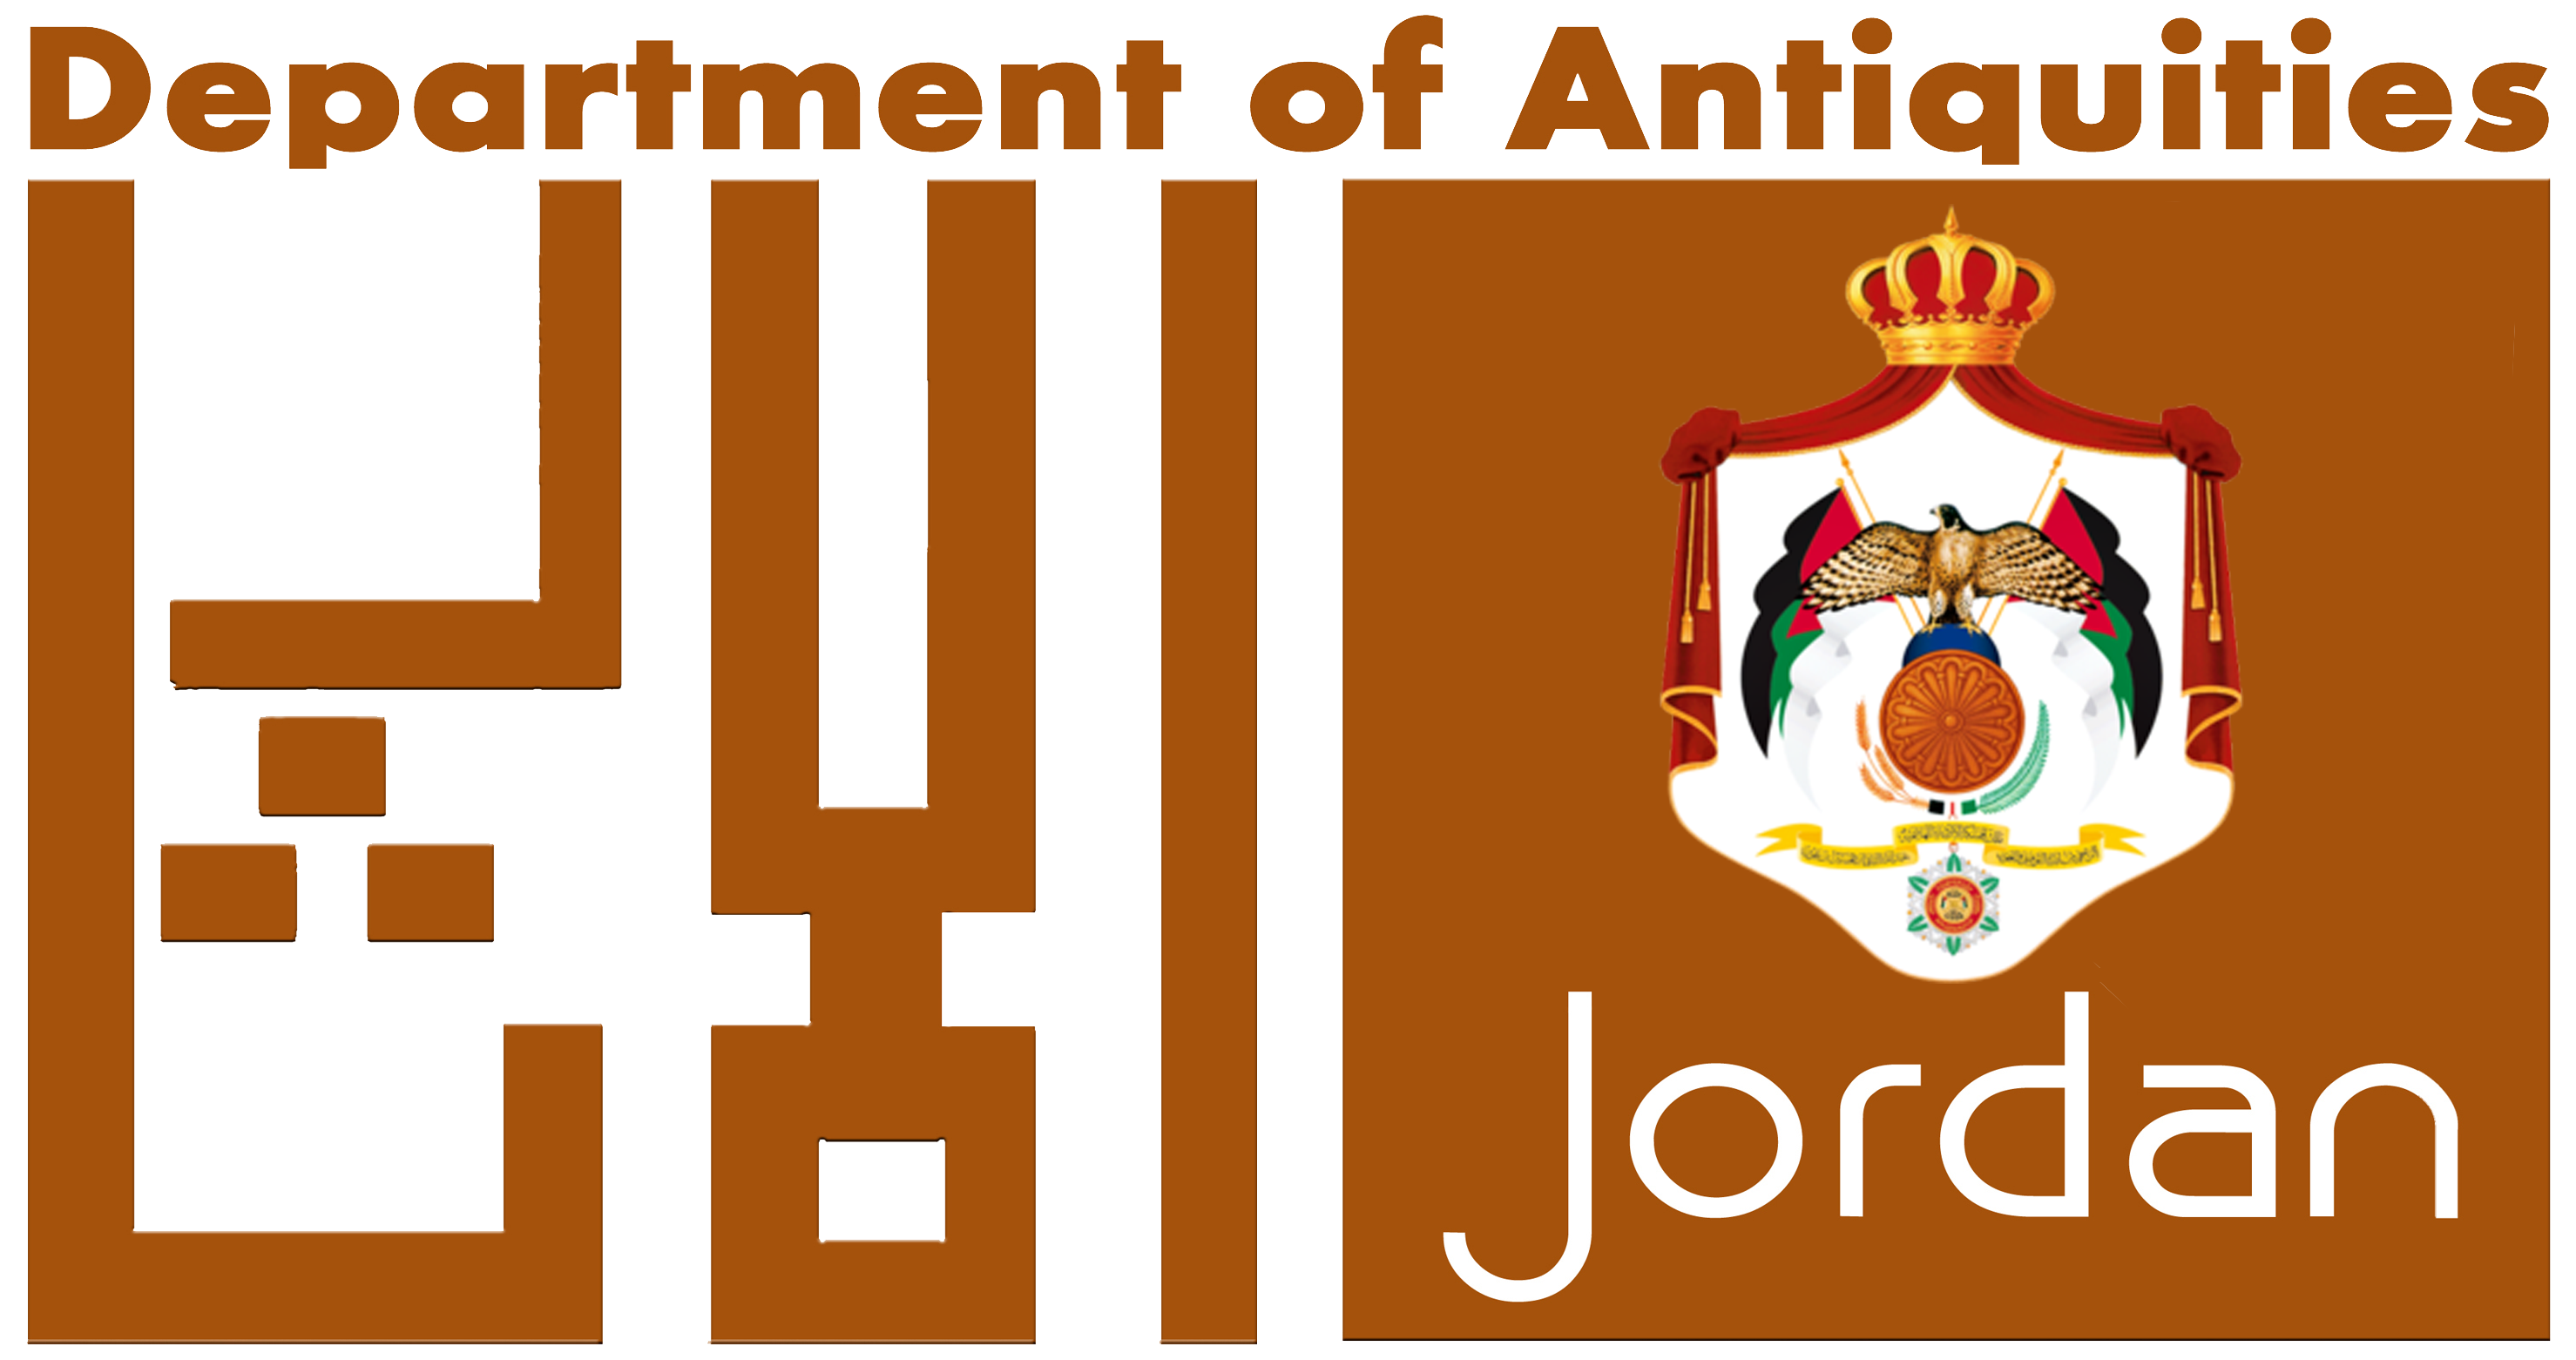 DEPARTMENT OF ANTIQUITIES JORDAN